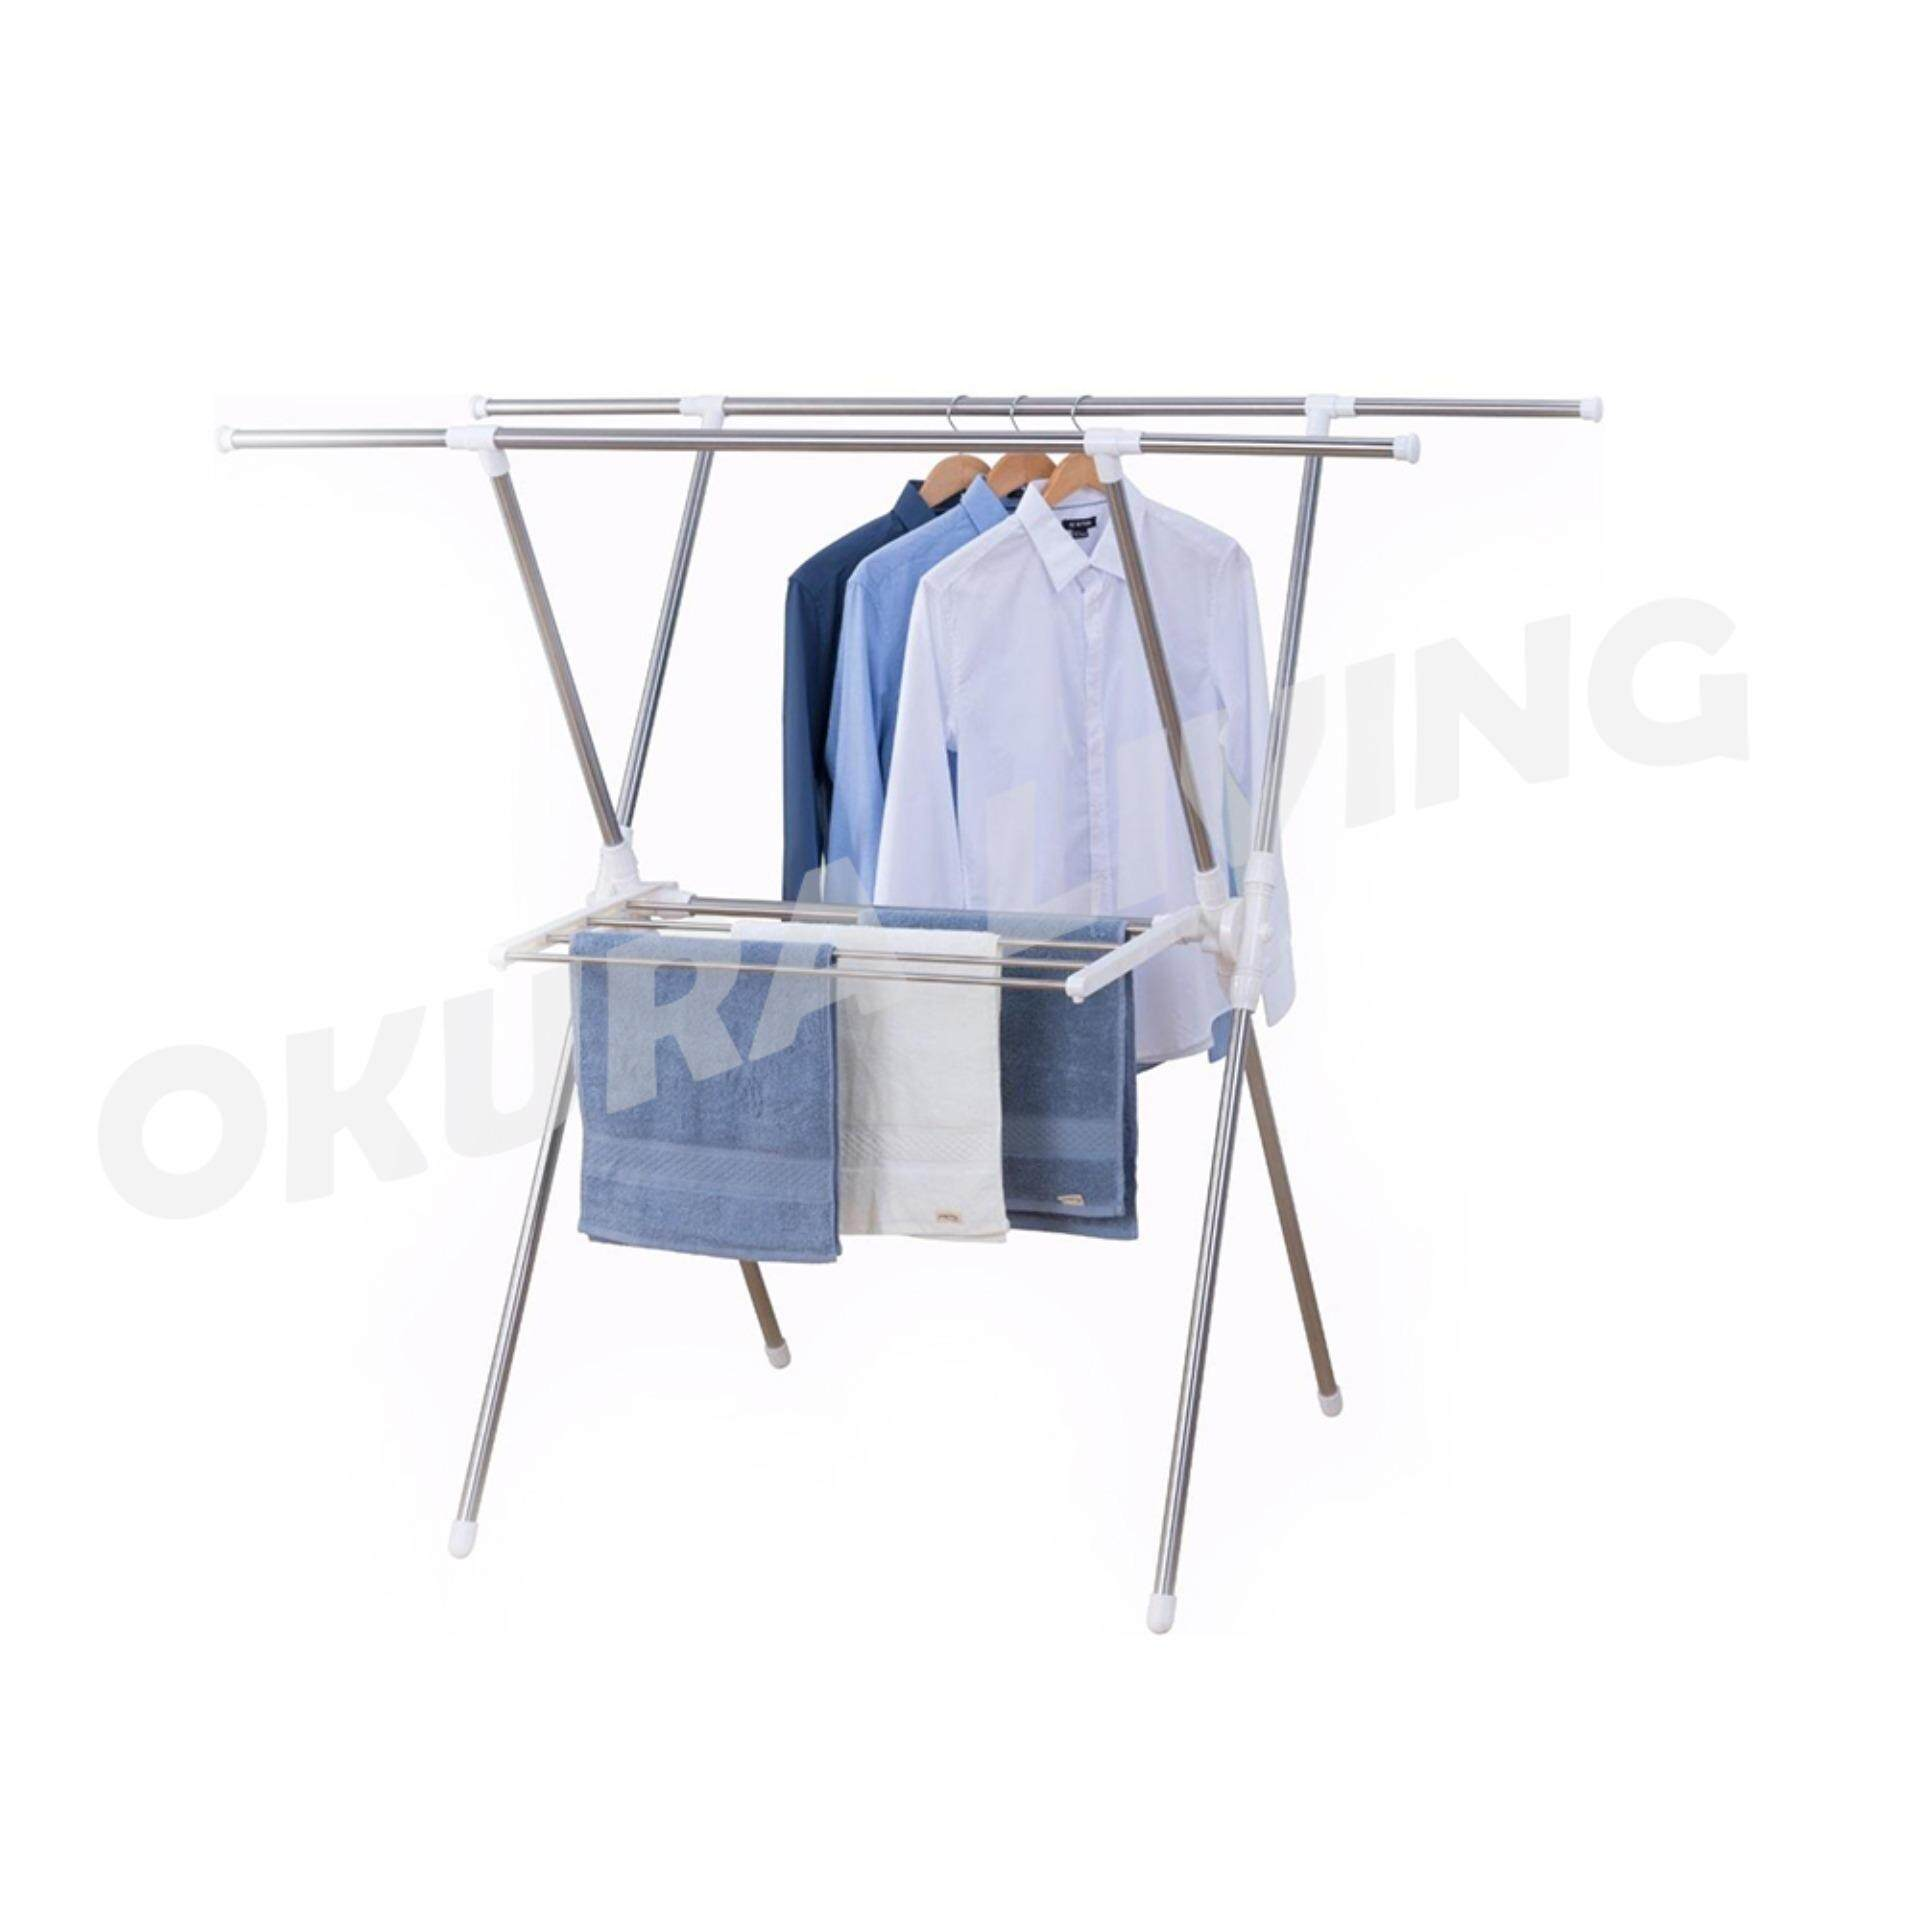 OKURA Stainless Steel Extendable X-Type Clothes Drying and Hanging Rack